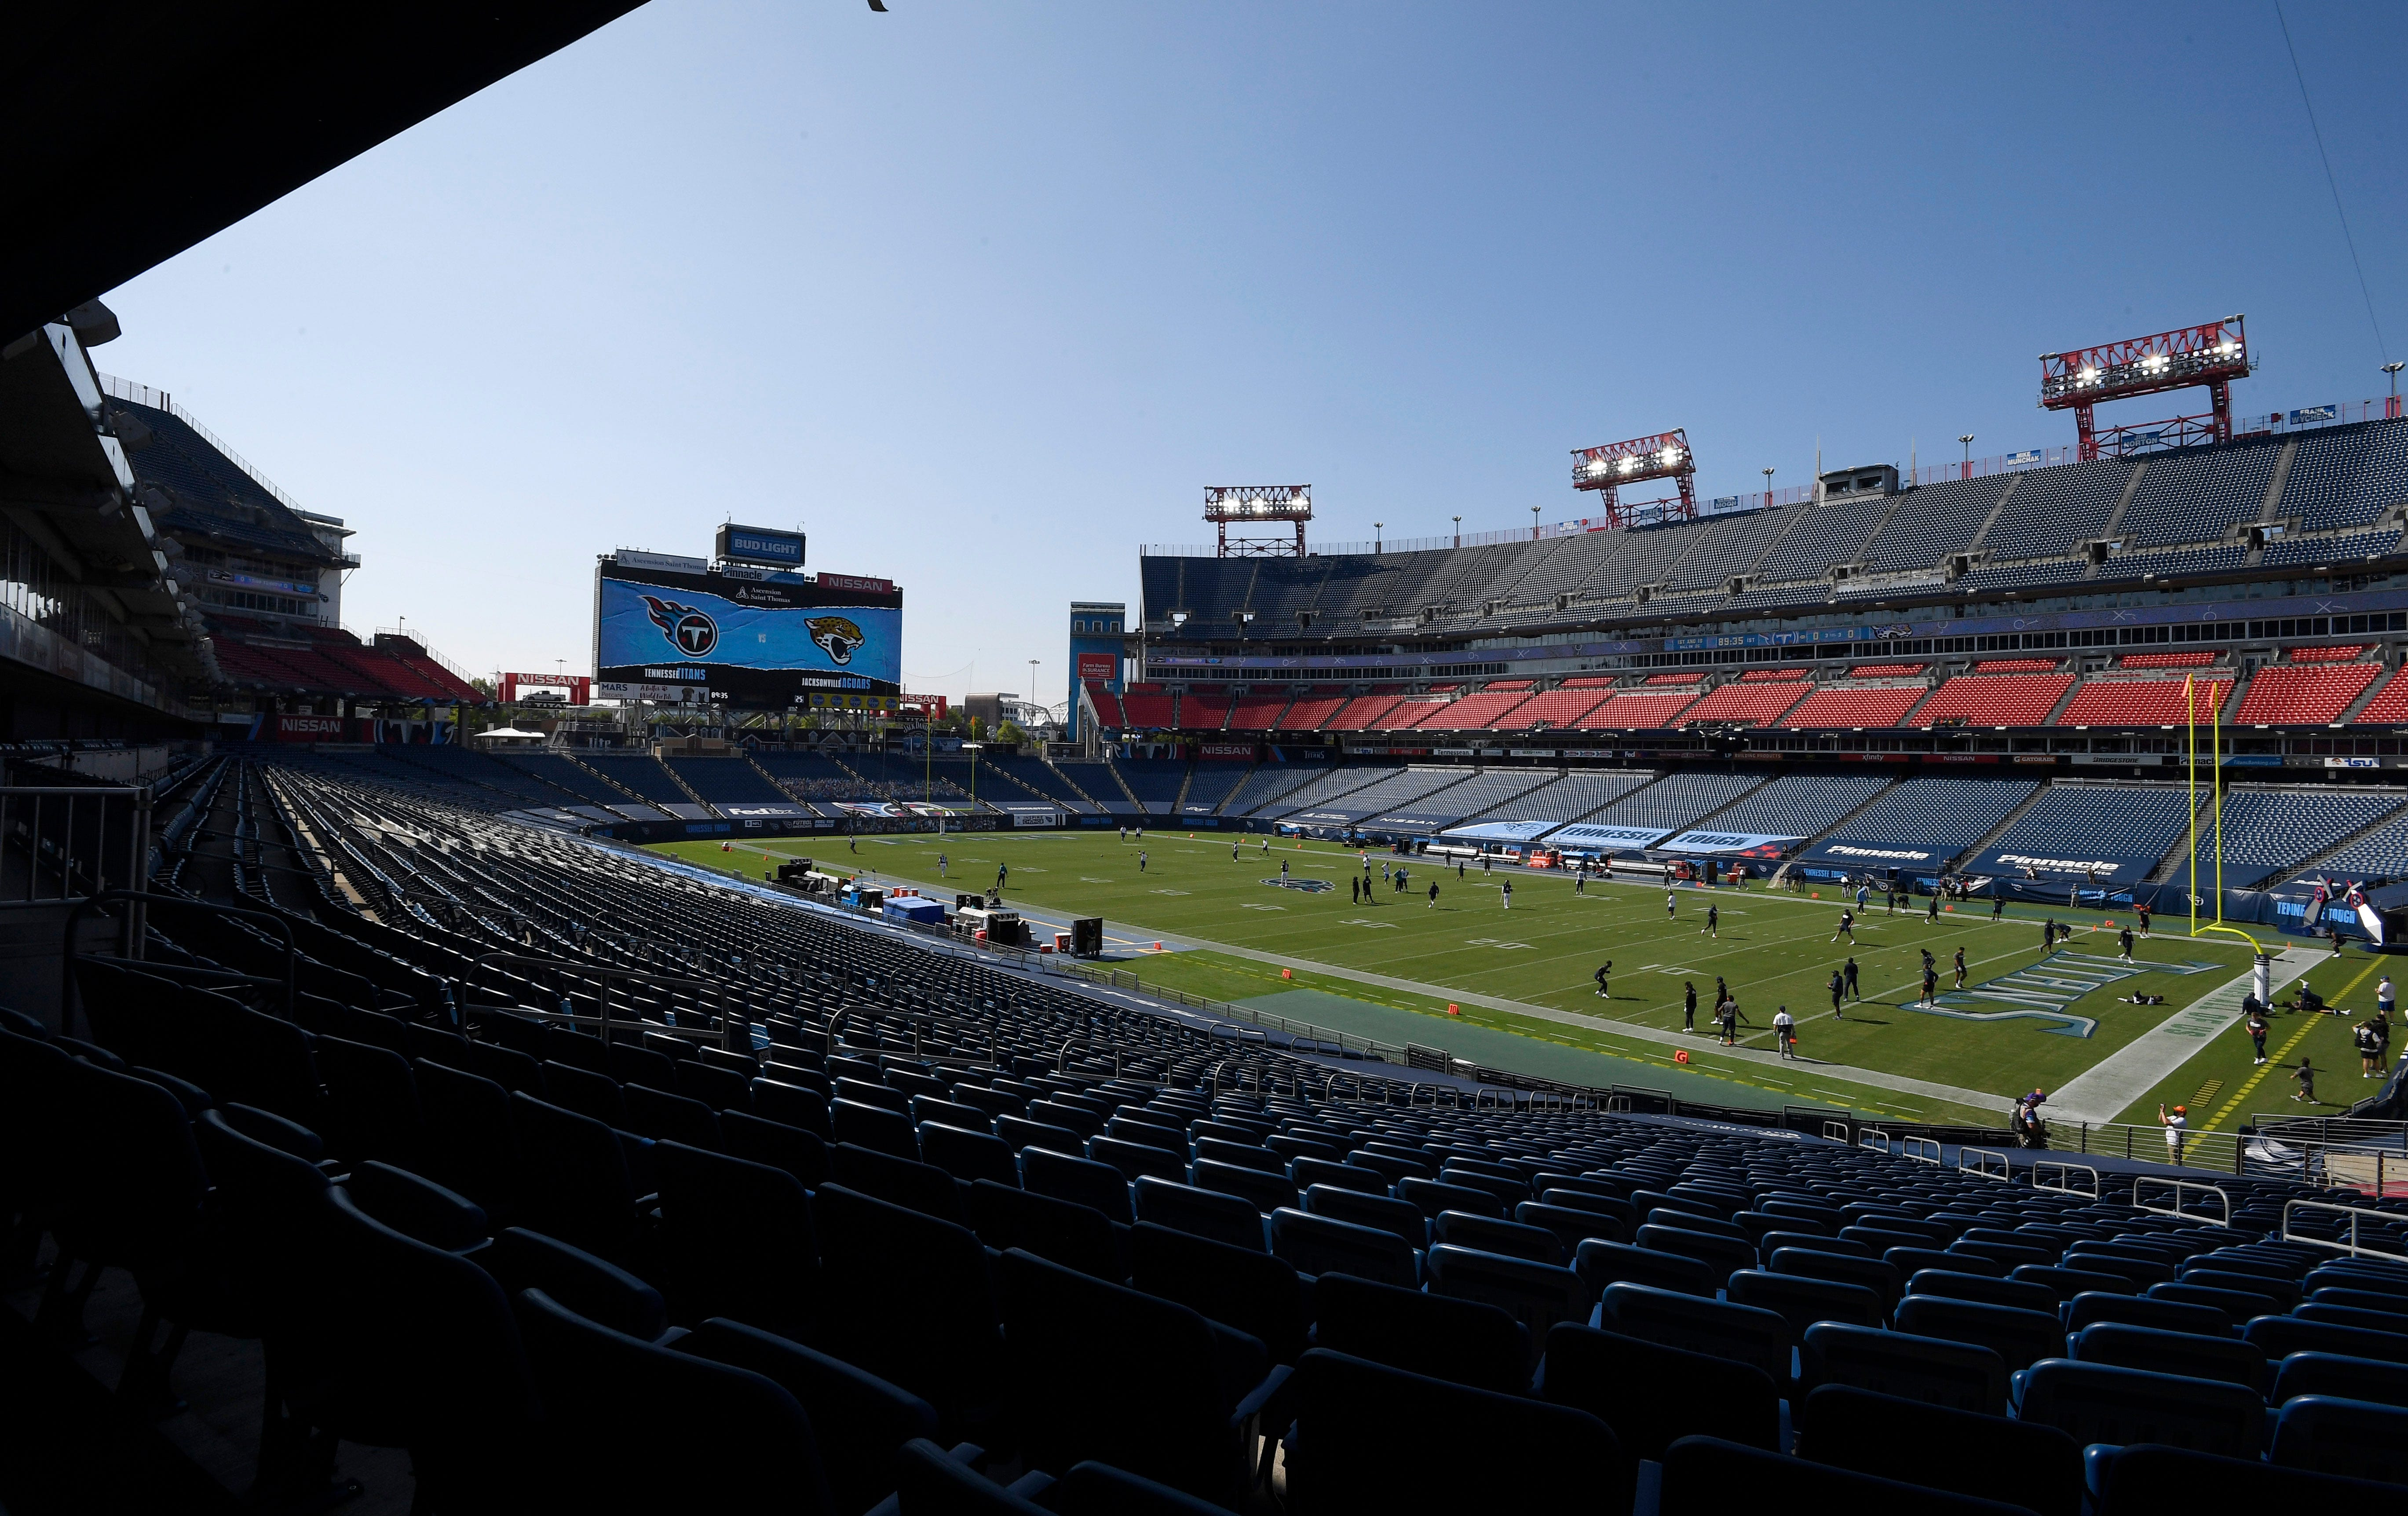 Opinion: Nashville is becoming COVID-19 capital of the American sports world